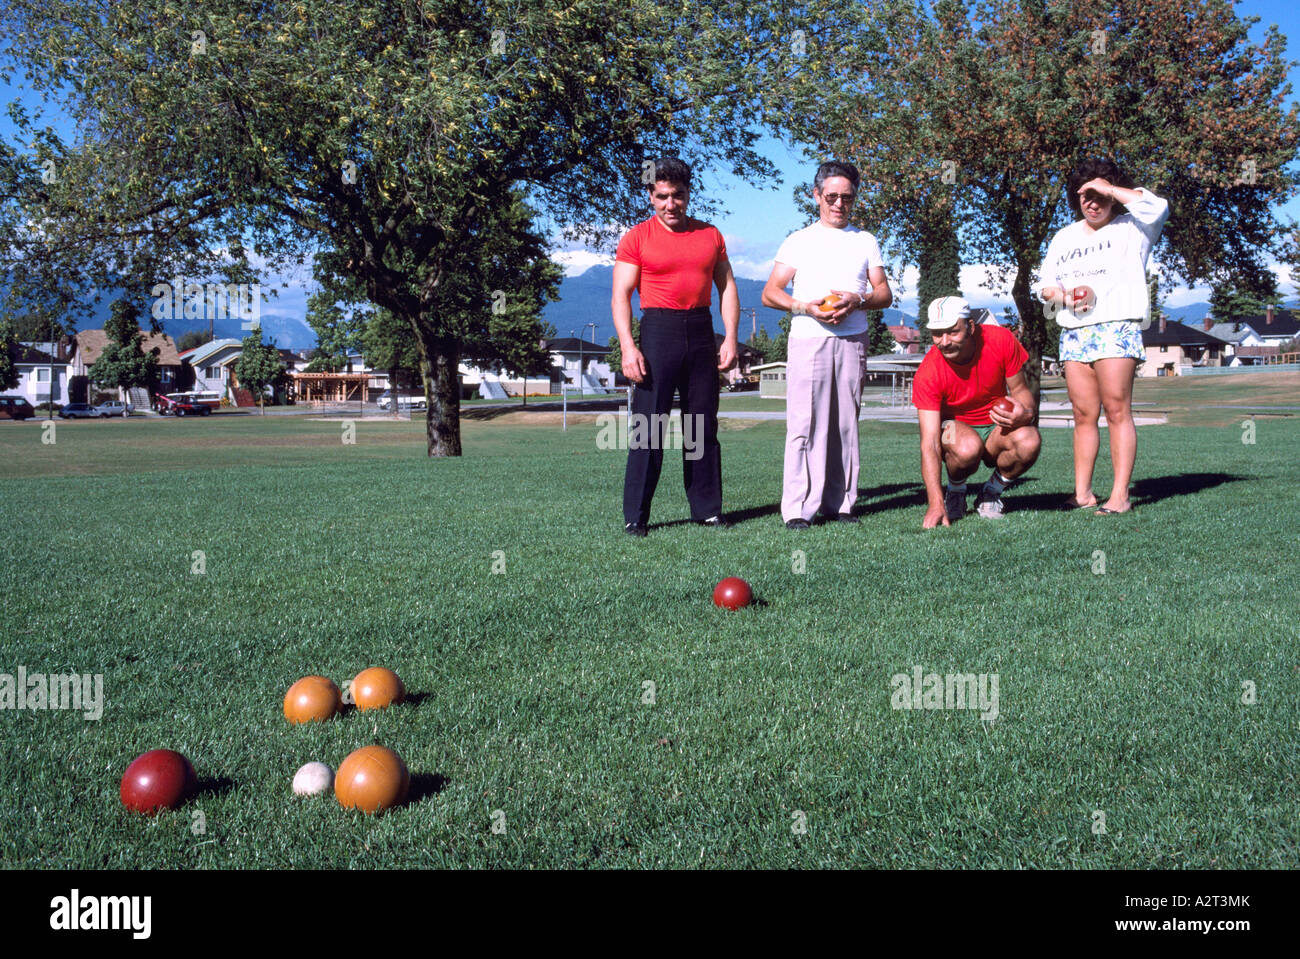 Bocce Players playing the Italian Game of Bocce Ball in a Park in ...